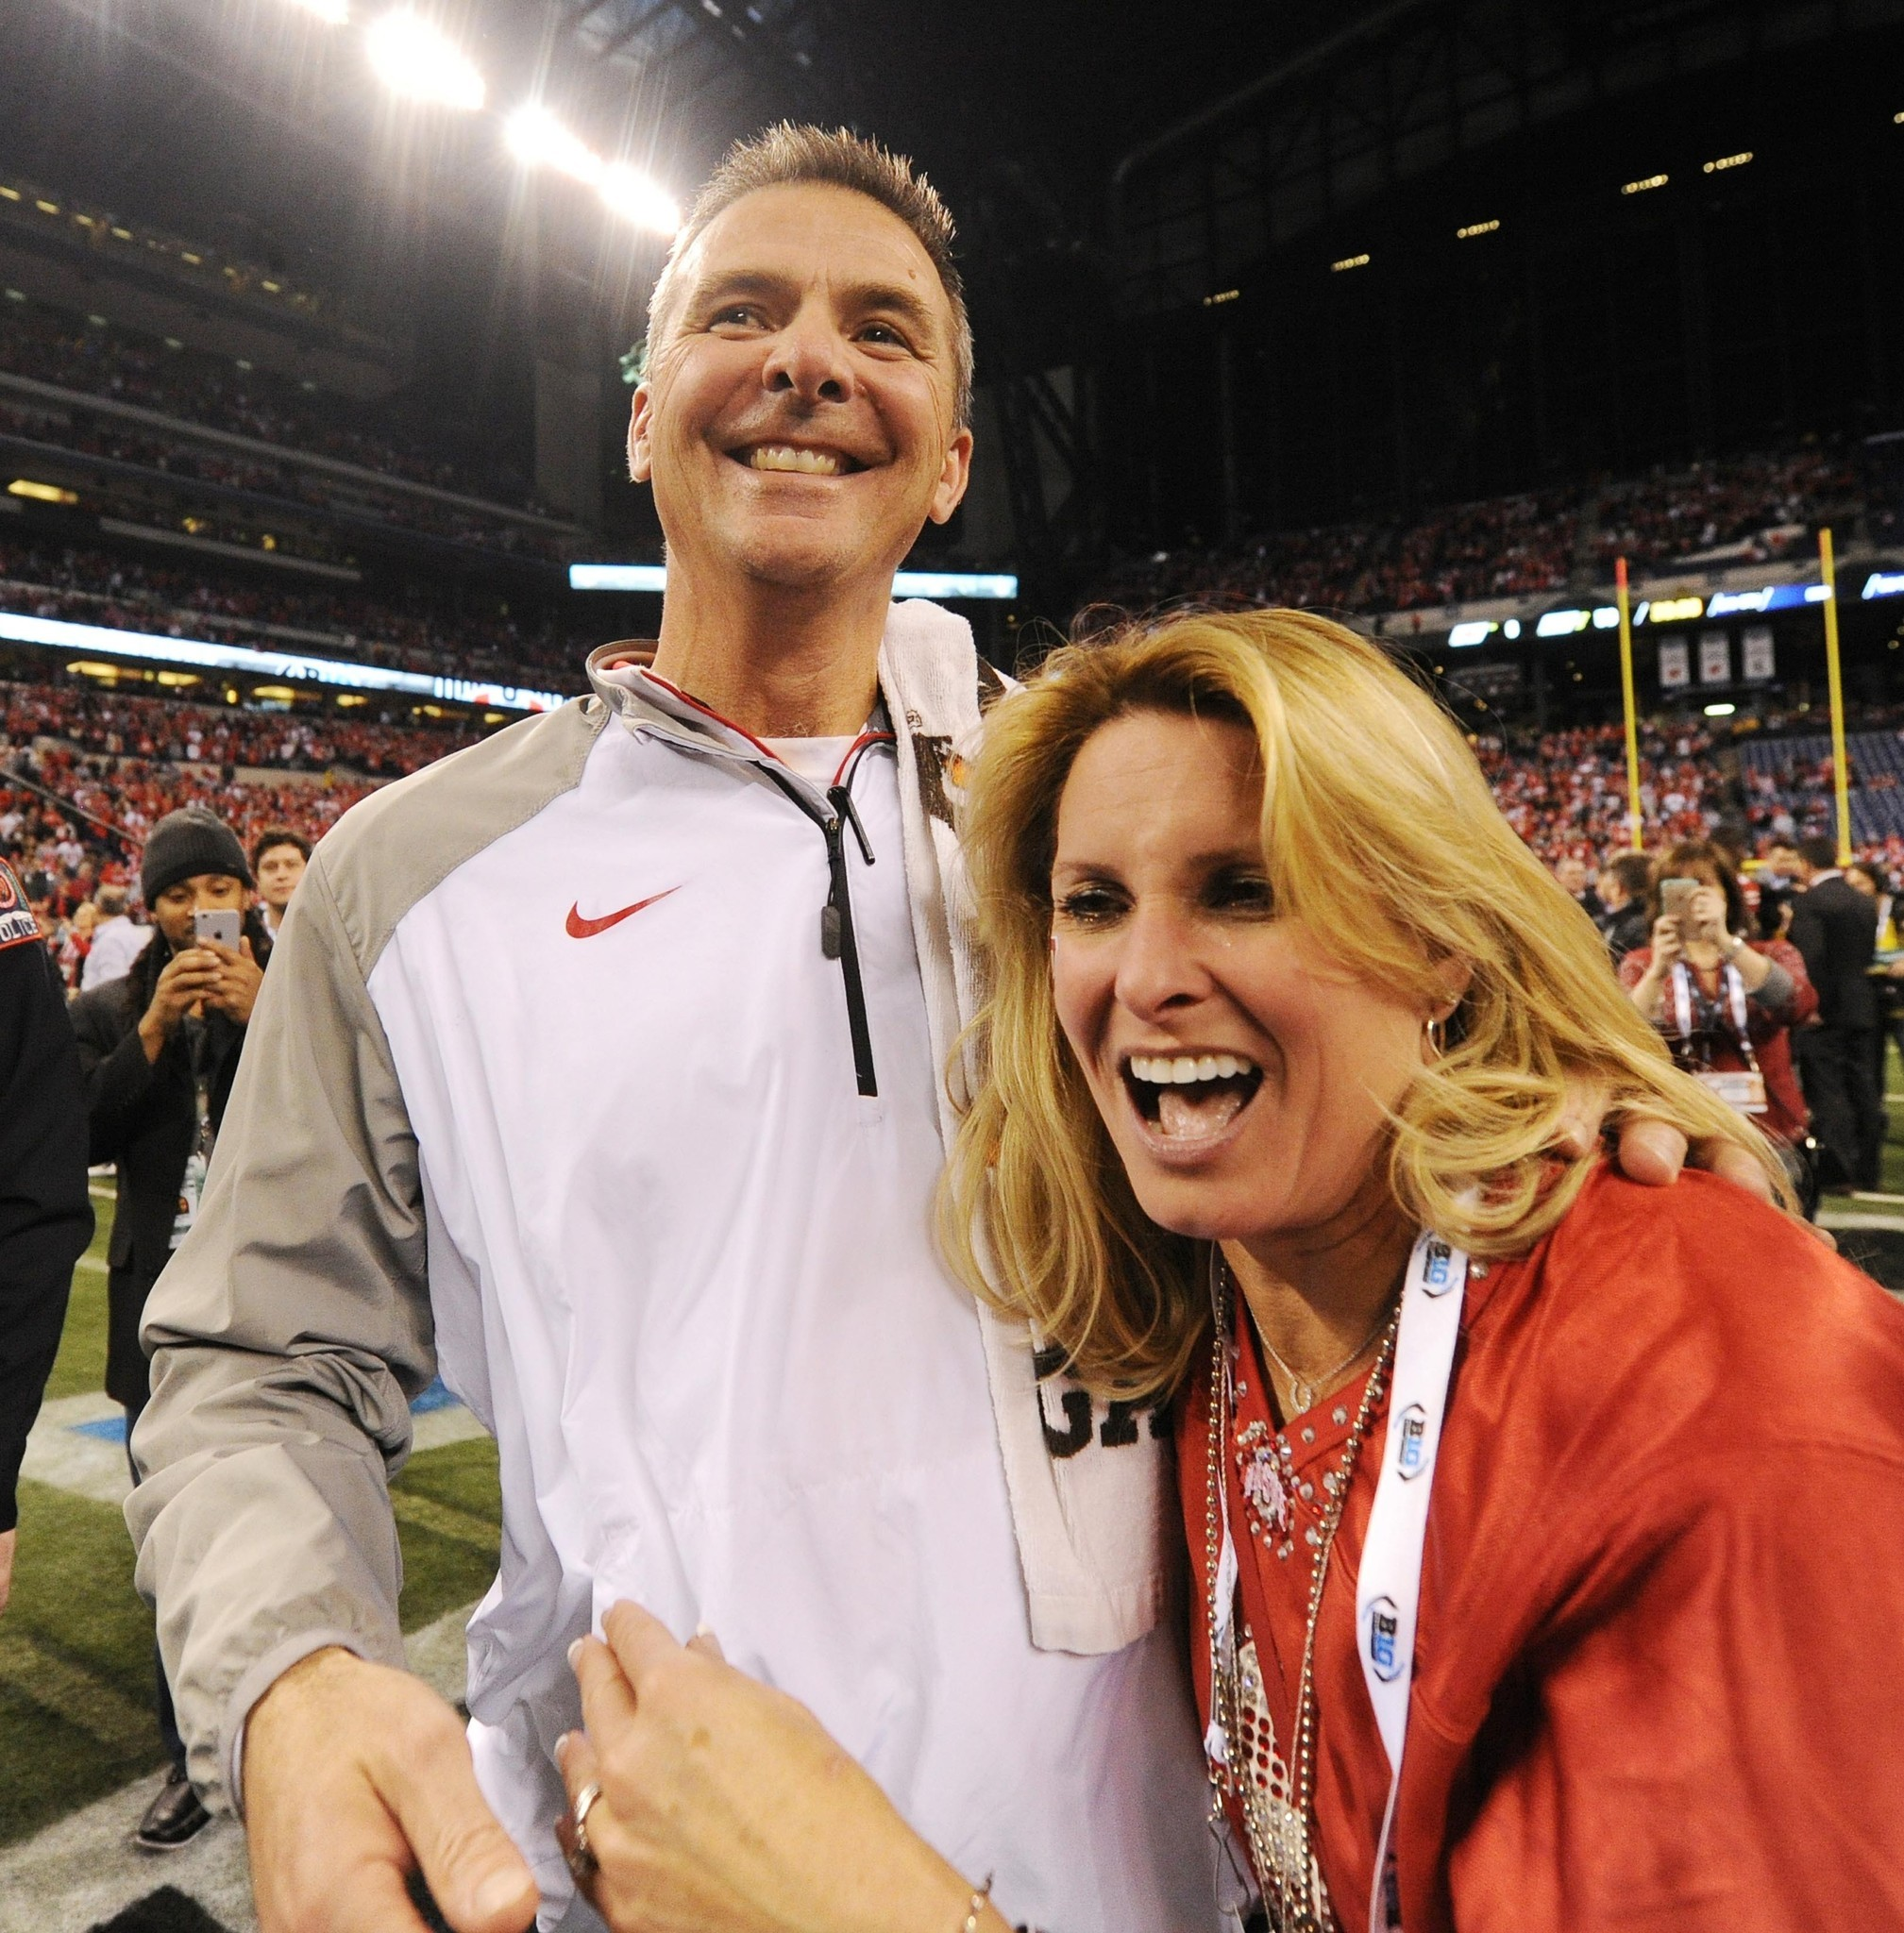 Urban Meyer S Wife S Hair Catches Fire At Birthday Party